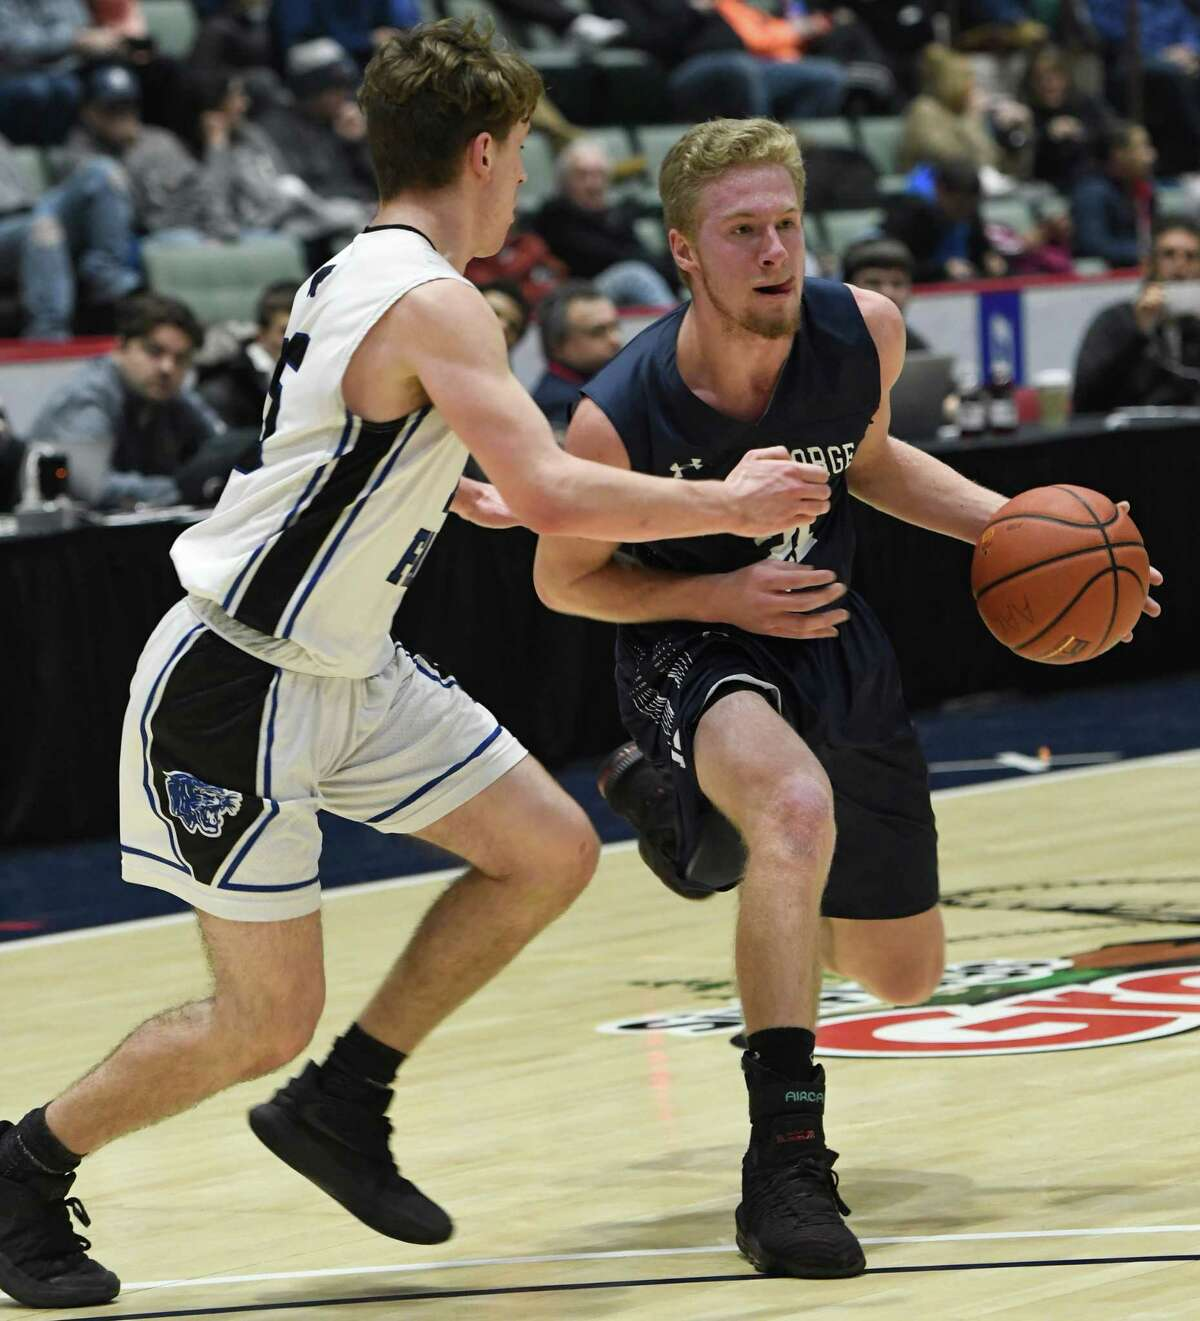 Hoosick Falls's Max Kipp guards Lake George's Mason Flatley during a game of the Zero Gravity Slam North-South Classic in Glens Falls, N.Y., on Sunday, Jan. 27, 2019. (Jenn March, Special to the Times Union)